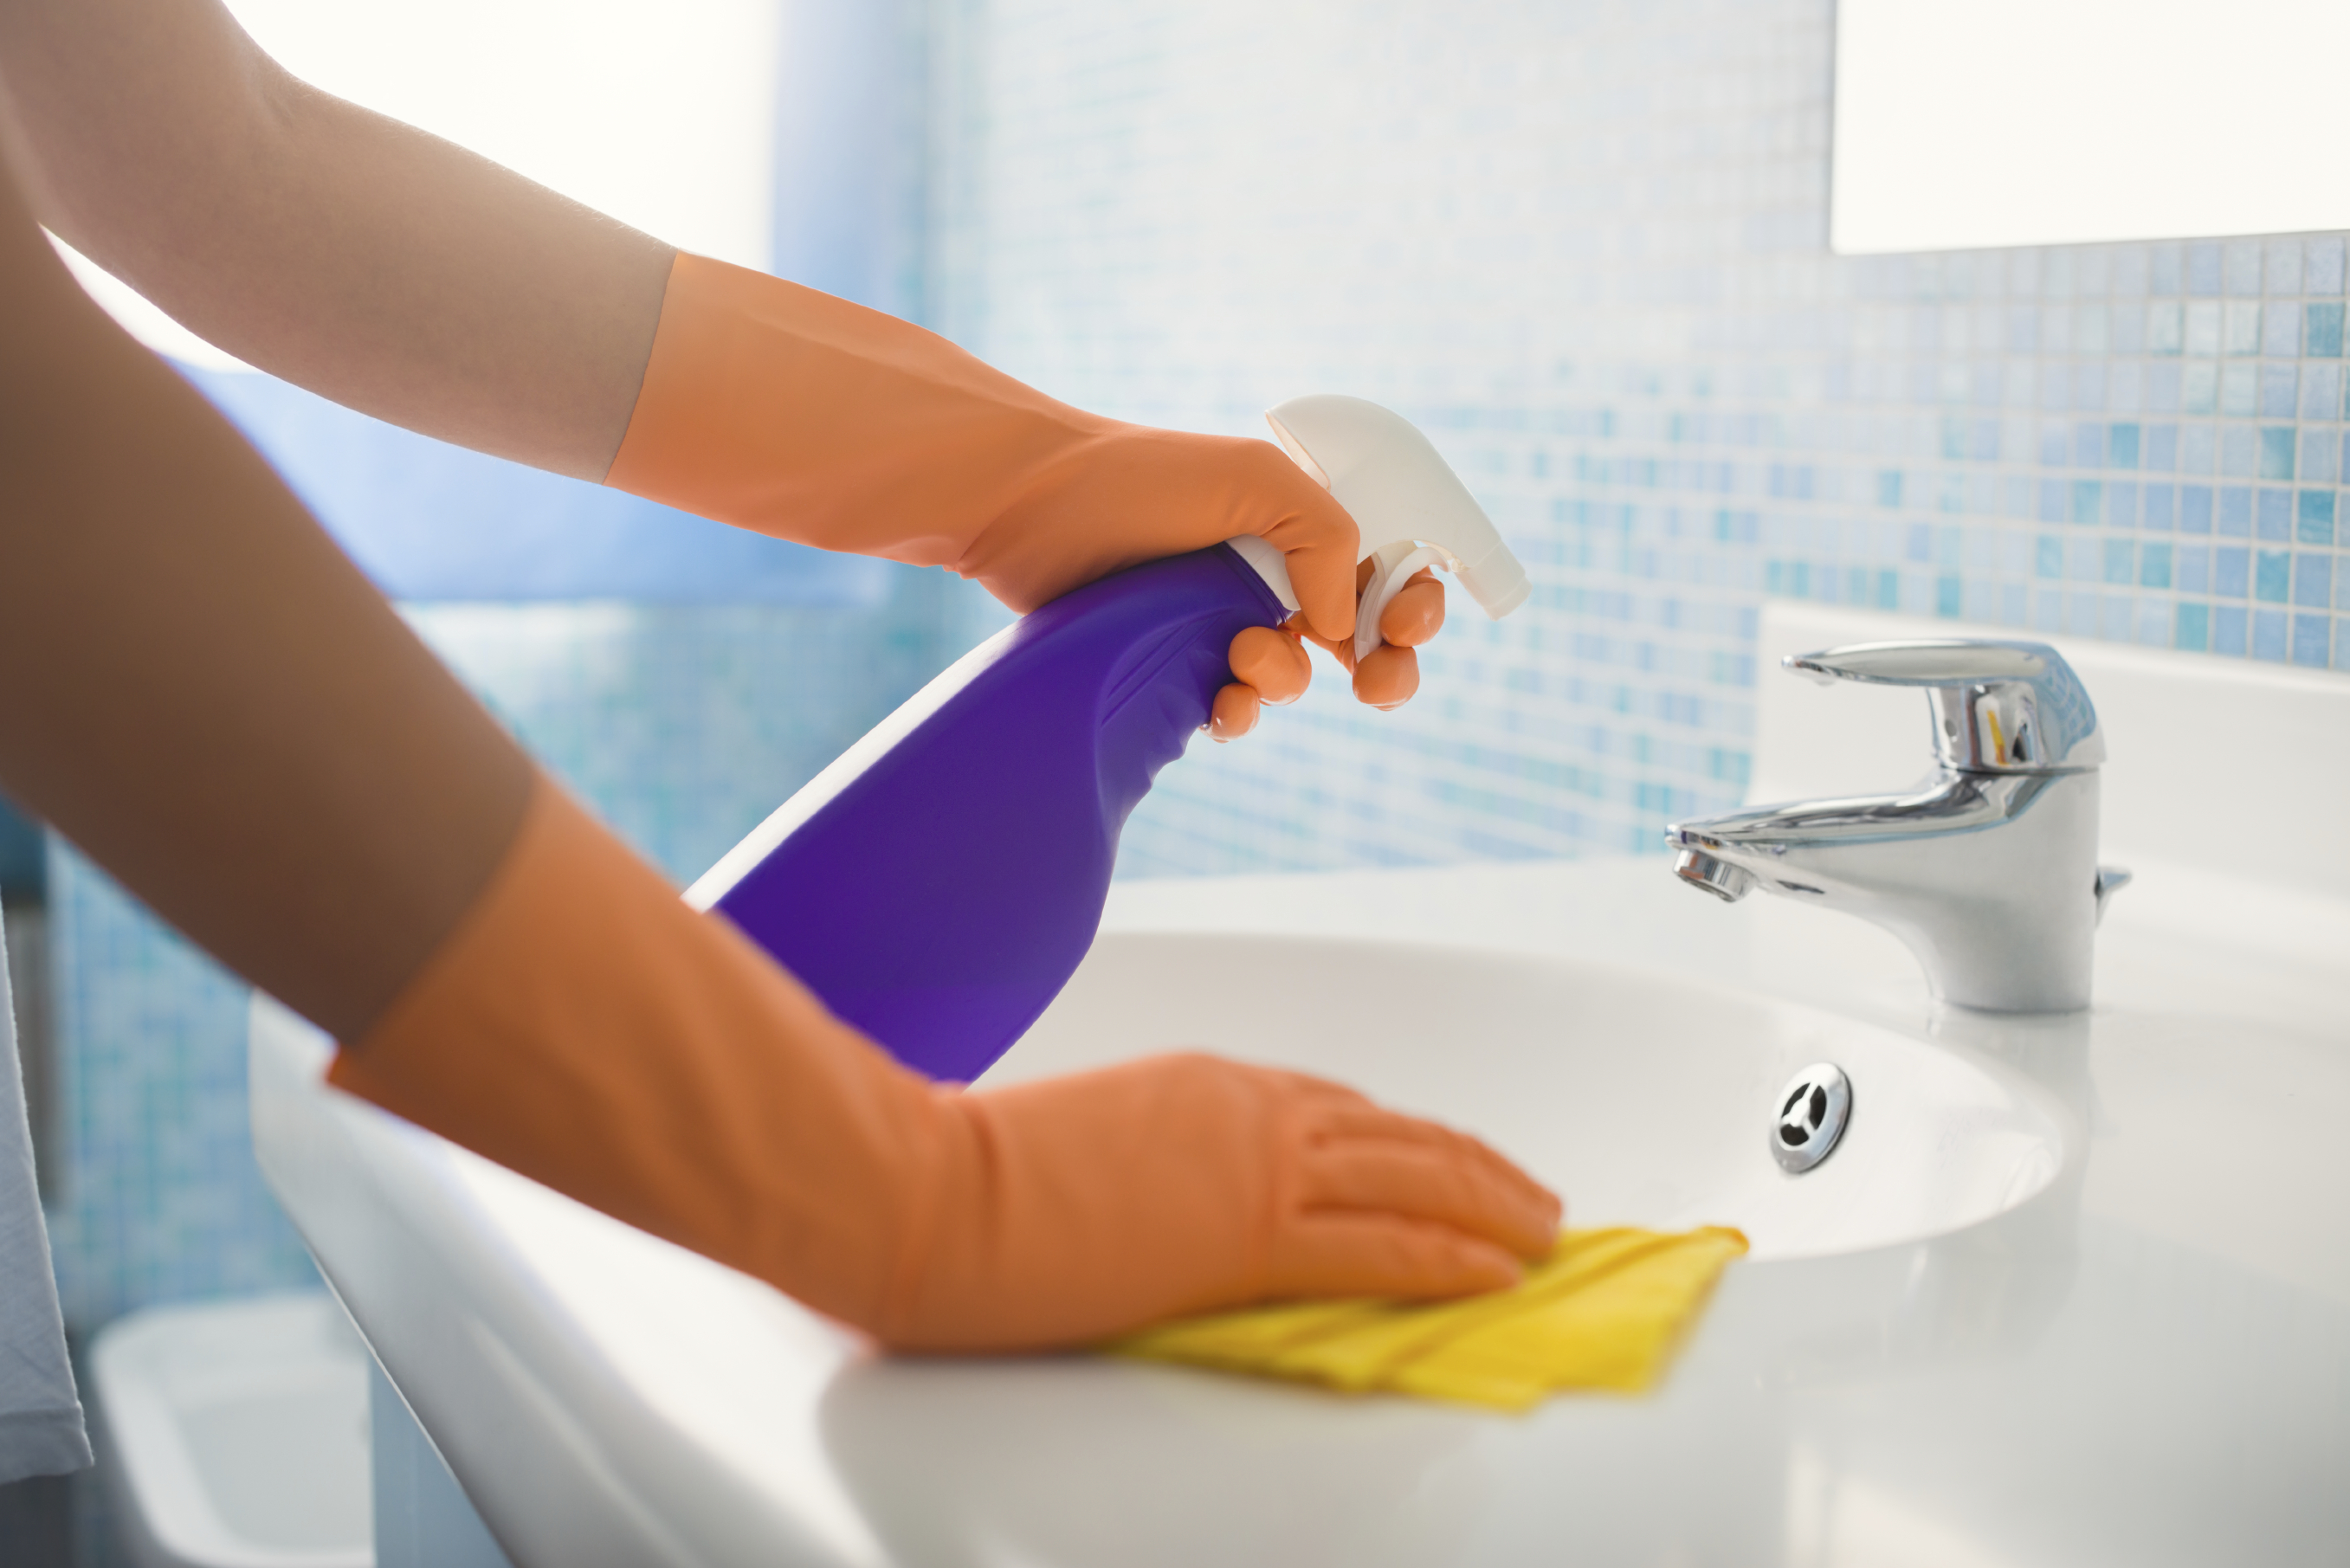 The Fastest Way To Clean Your Bathroom. Fall Cleaning